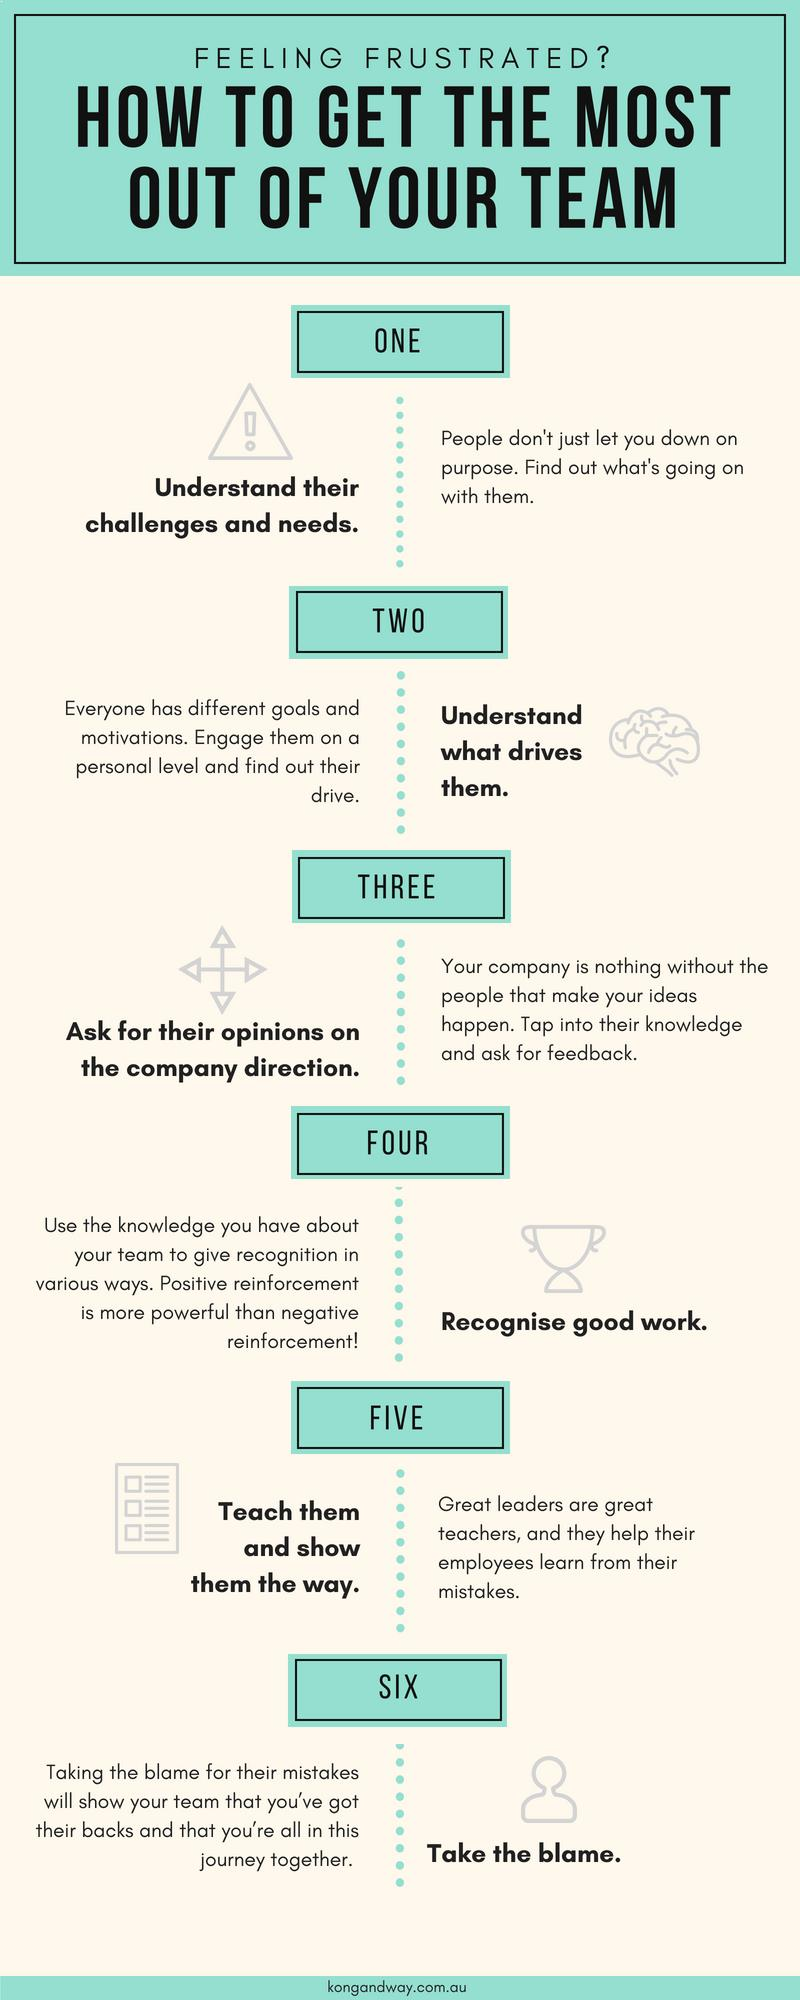 How to get the most out of your team infographic